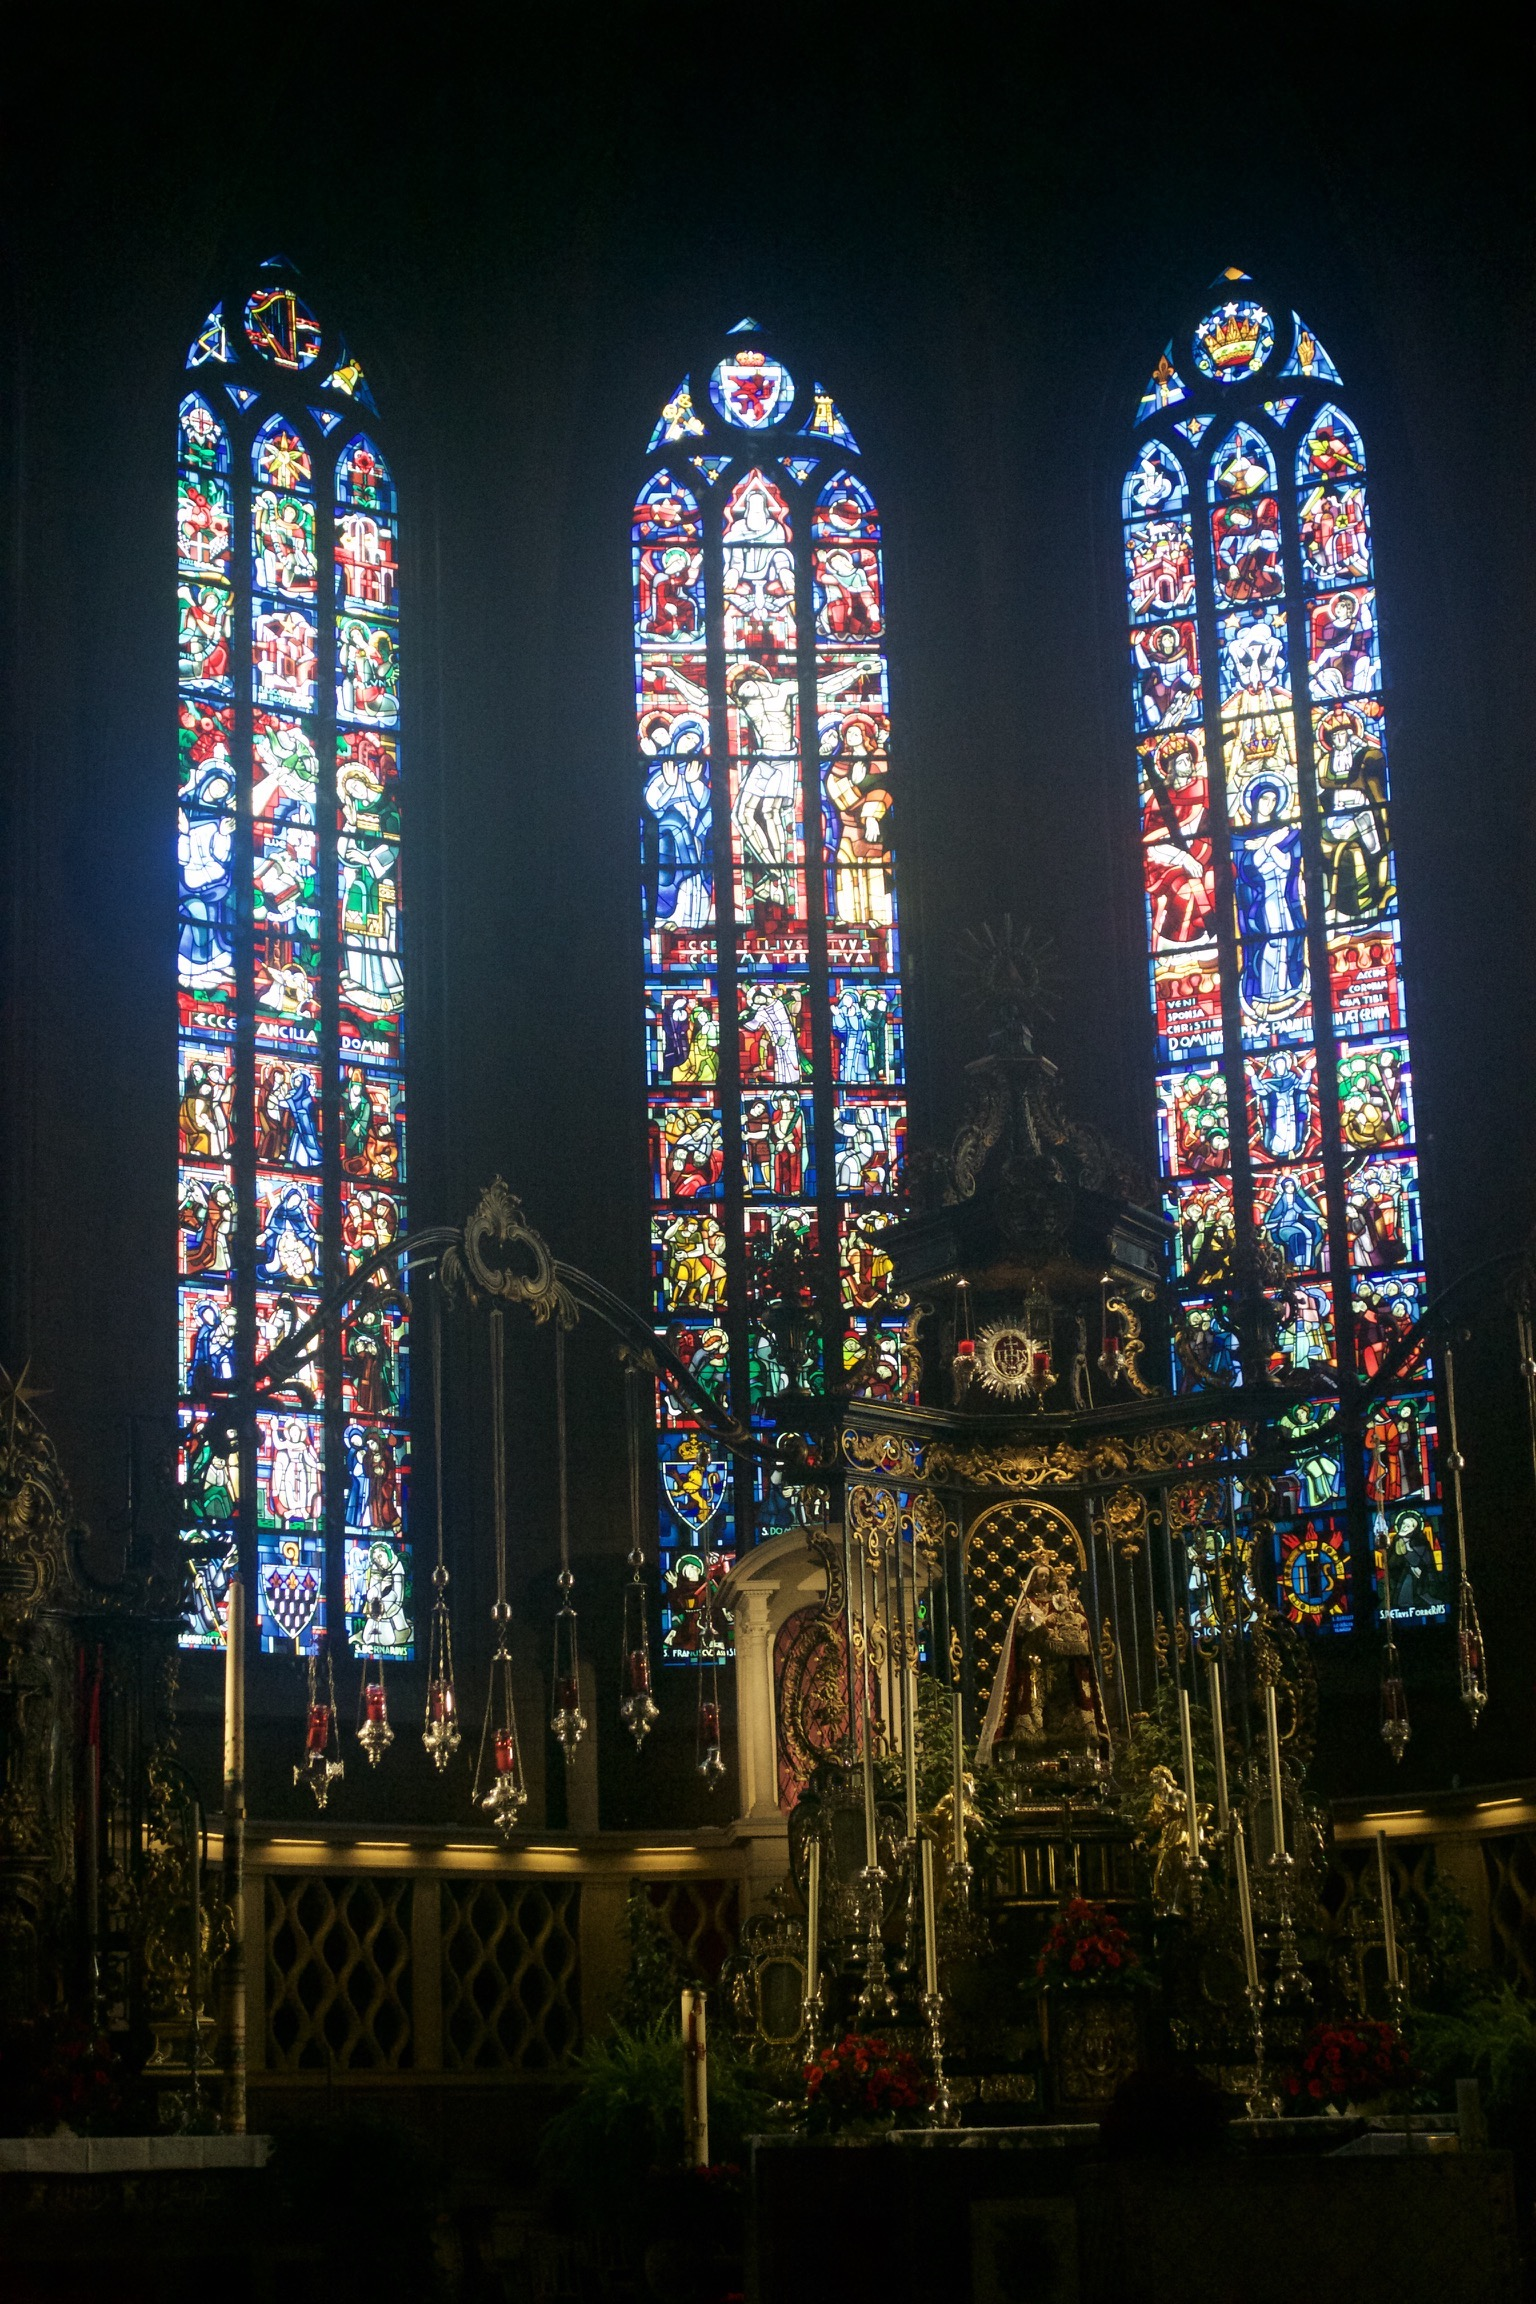 An ornate Catholic altar back lit by soaring stained glass windows.